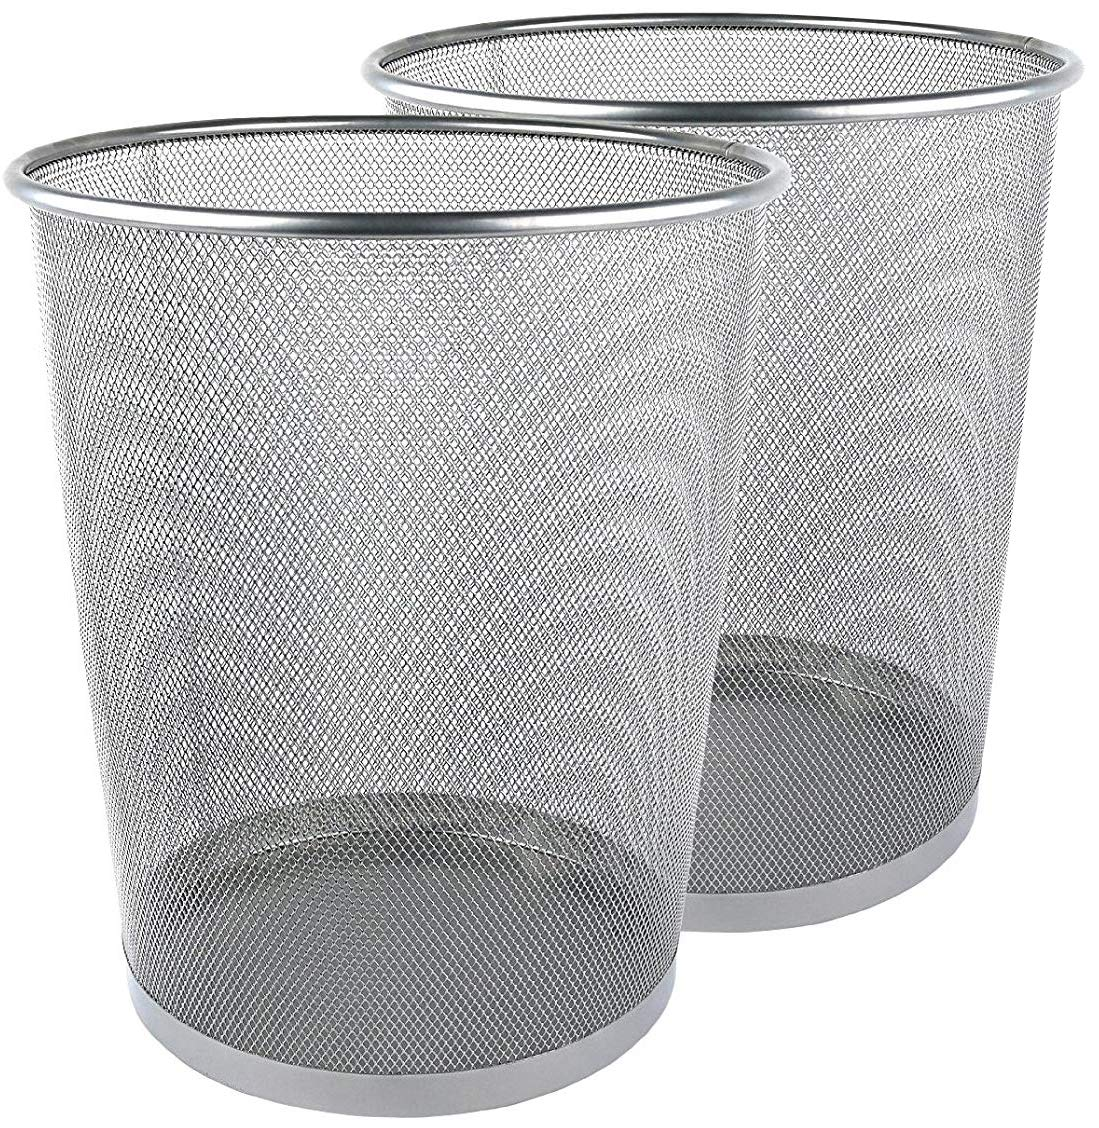 Greenco GRC2593 Mesh Wastebasket Trash Can, 6 Gallon, Silver, 2 Pack